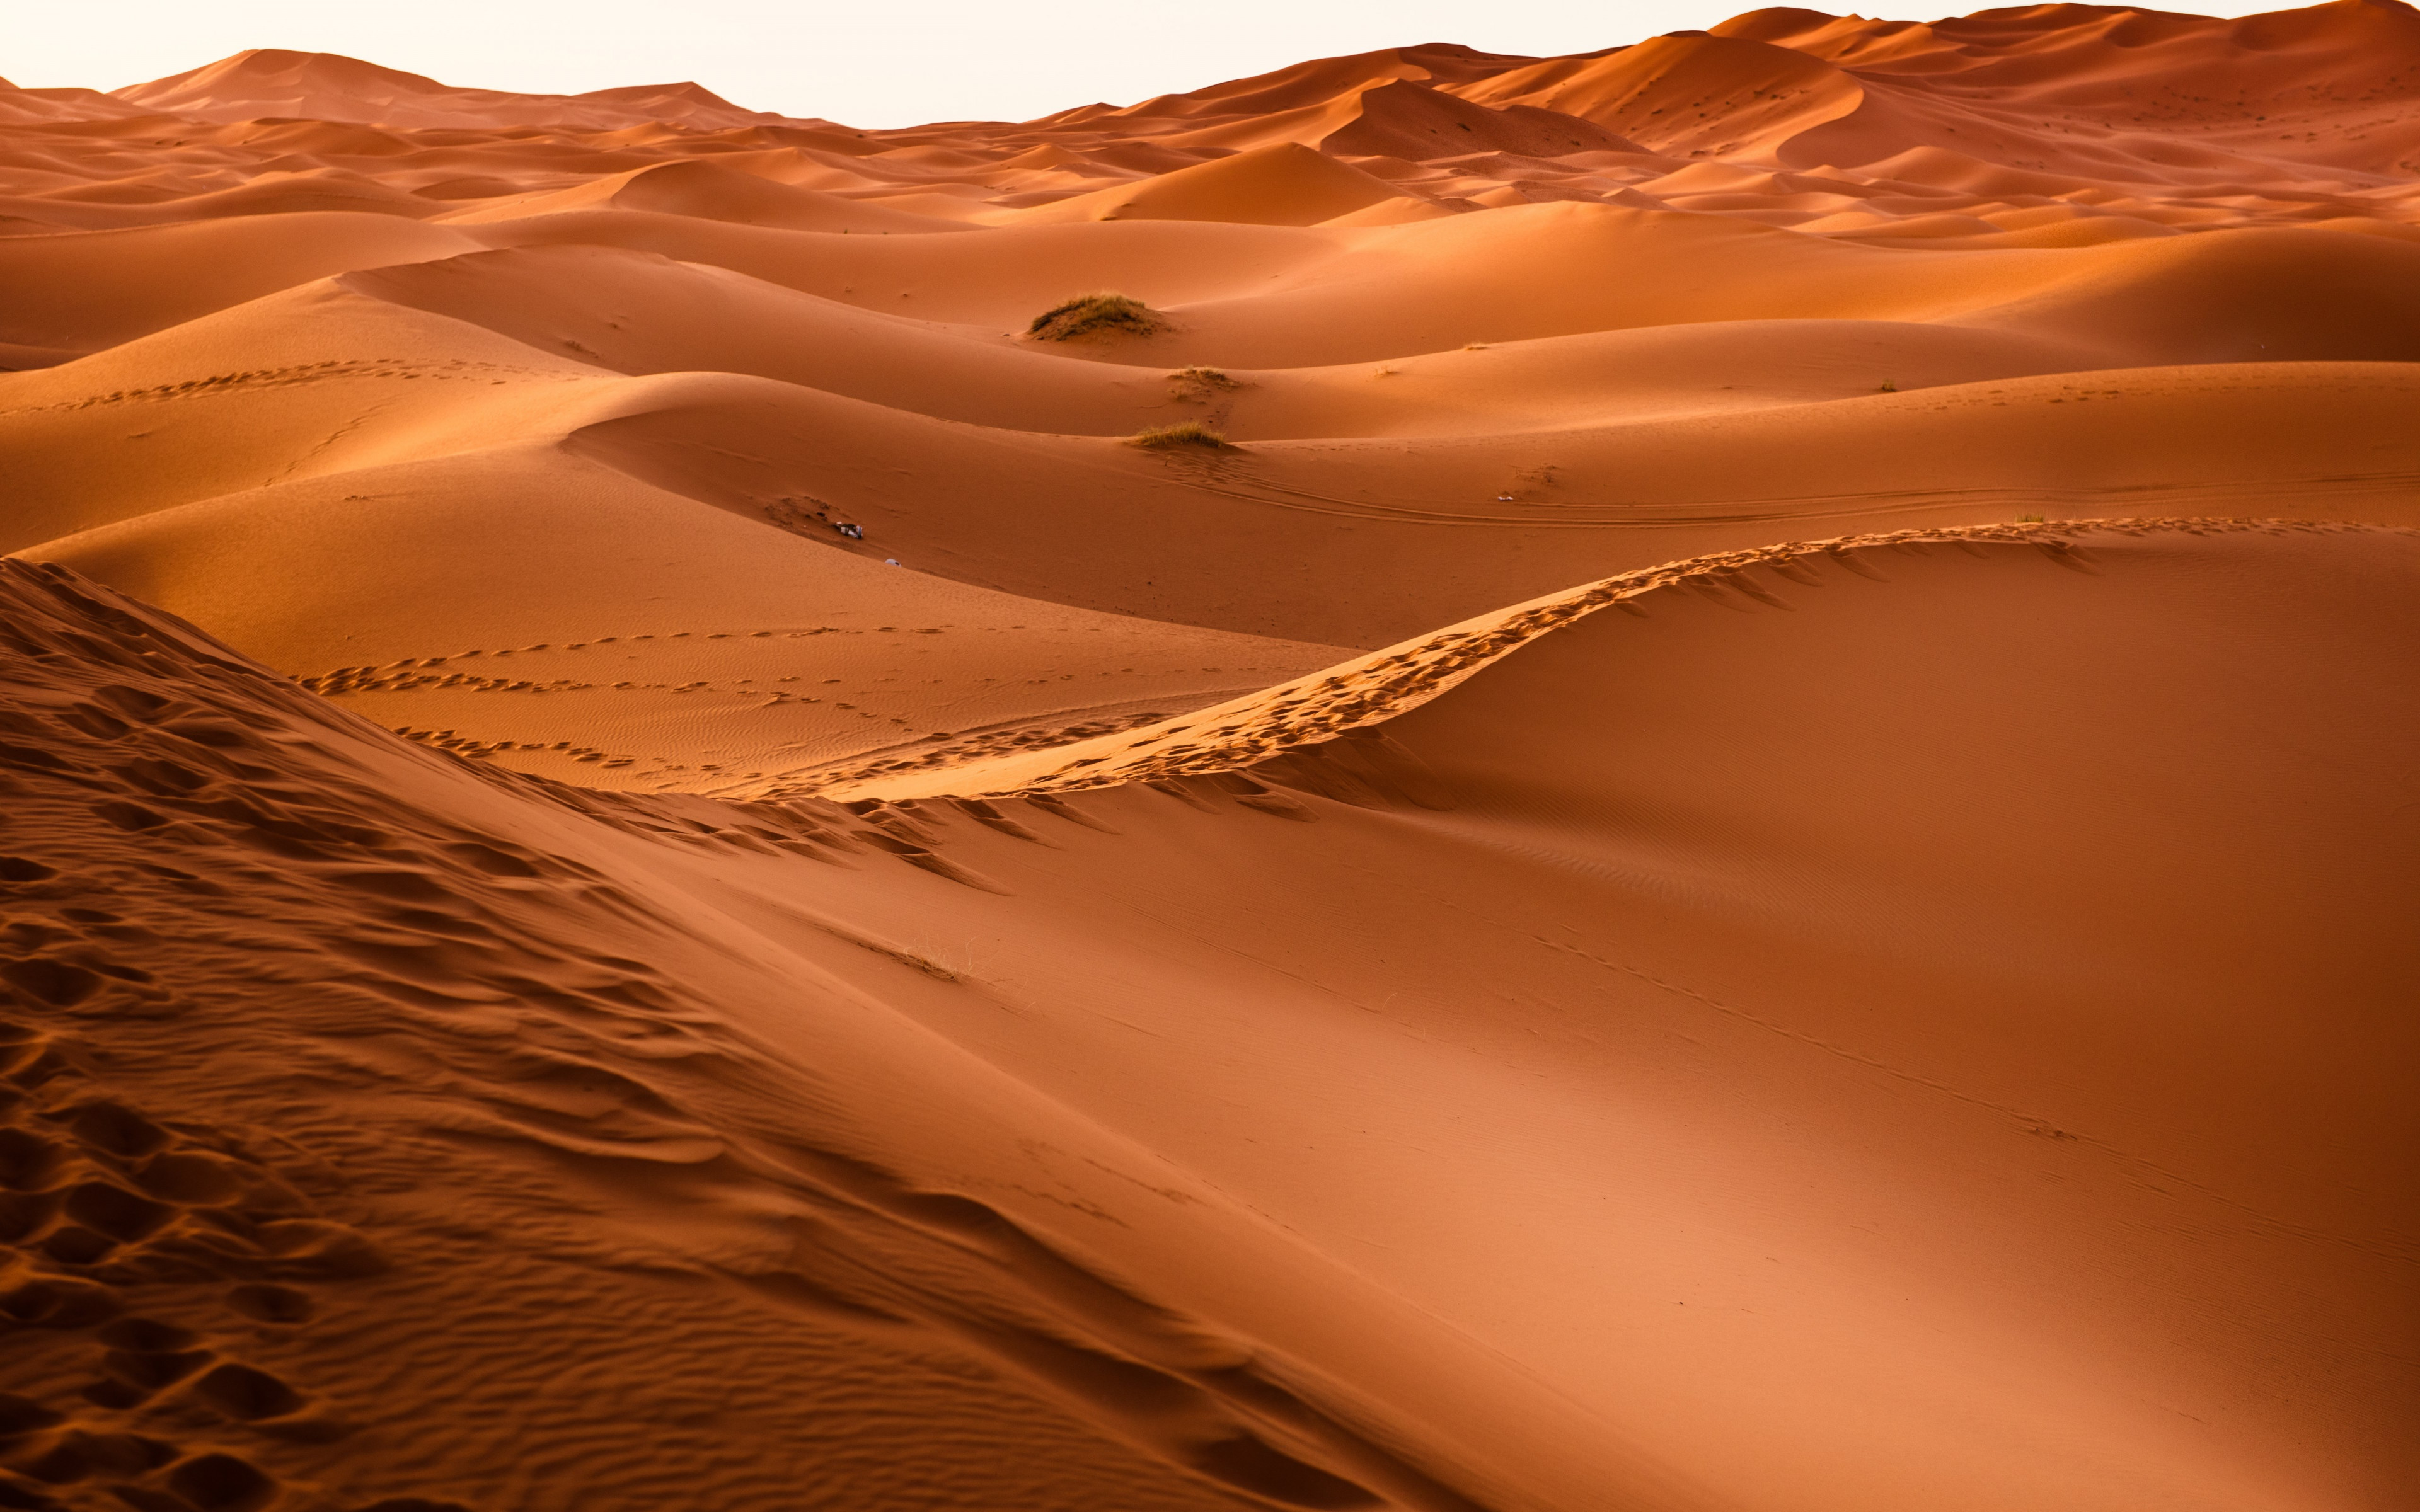 Sahara Desert | 3840x2400 wallpaper